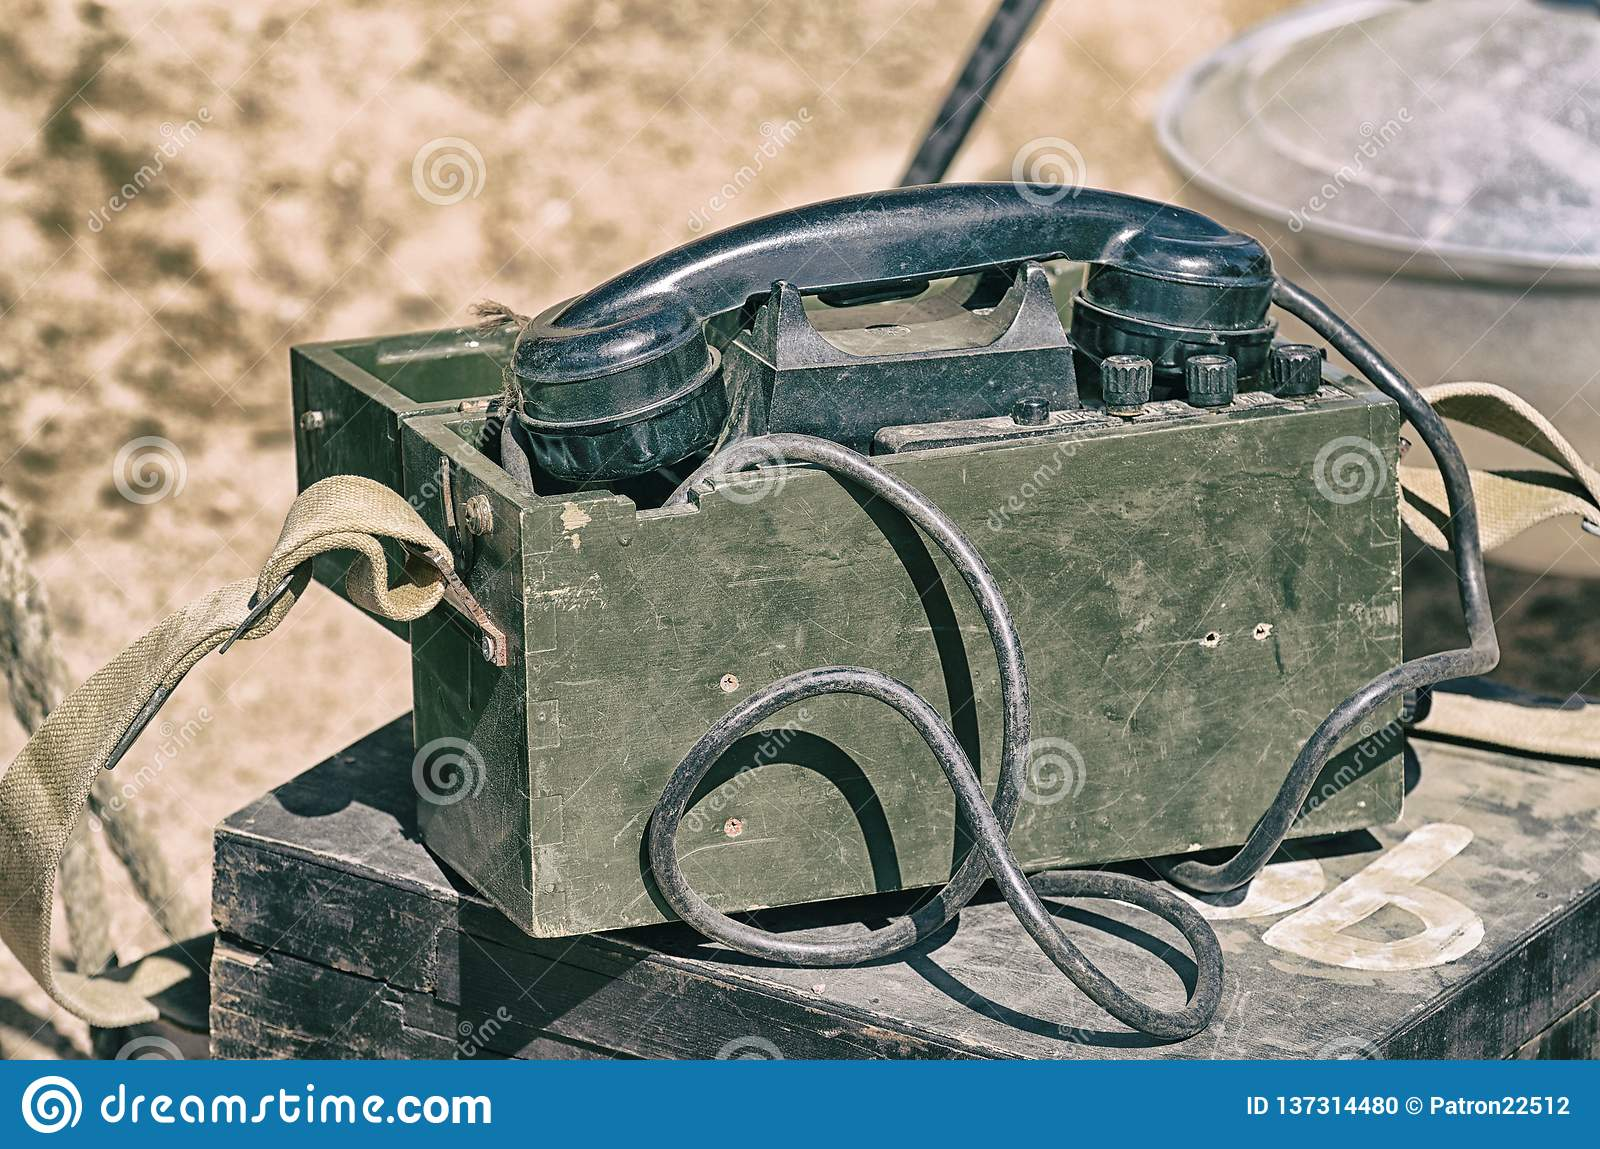 05b9f3444d410 Military Paraphernalia At The Festival Stock Photo - Image of army ...